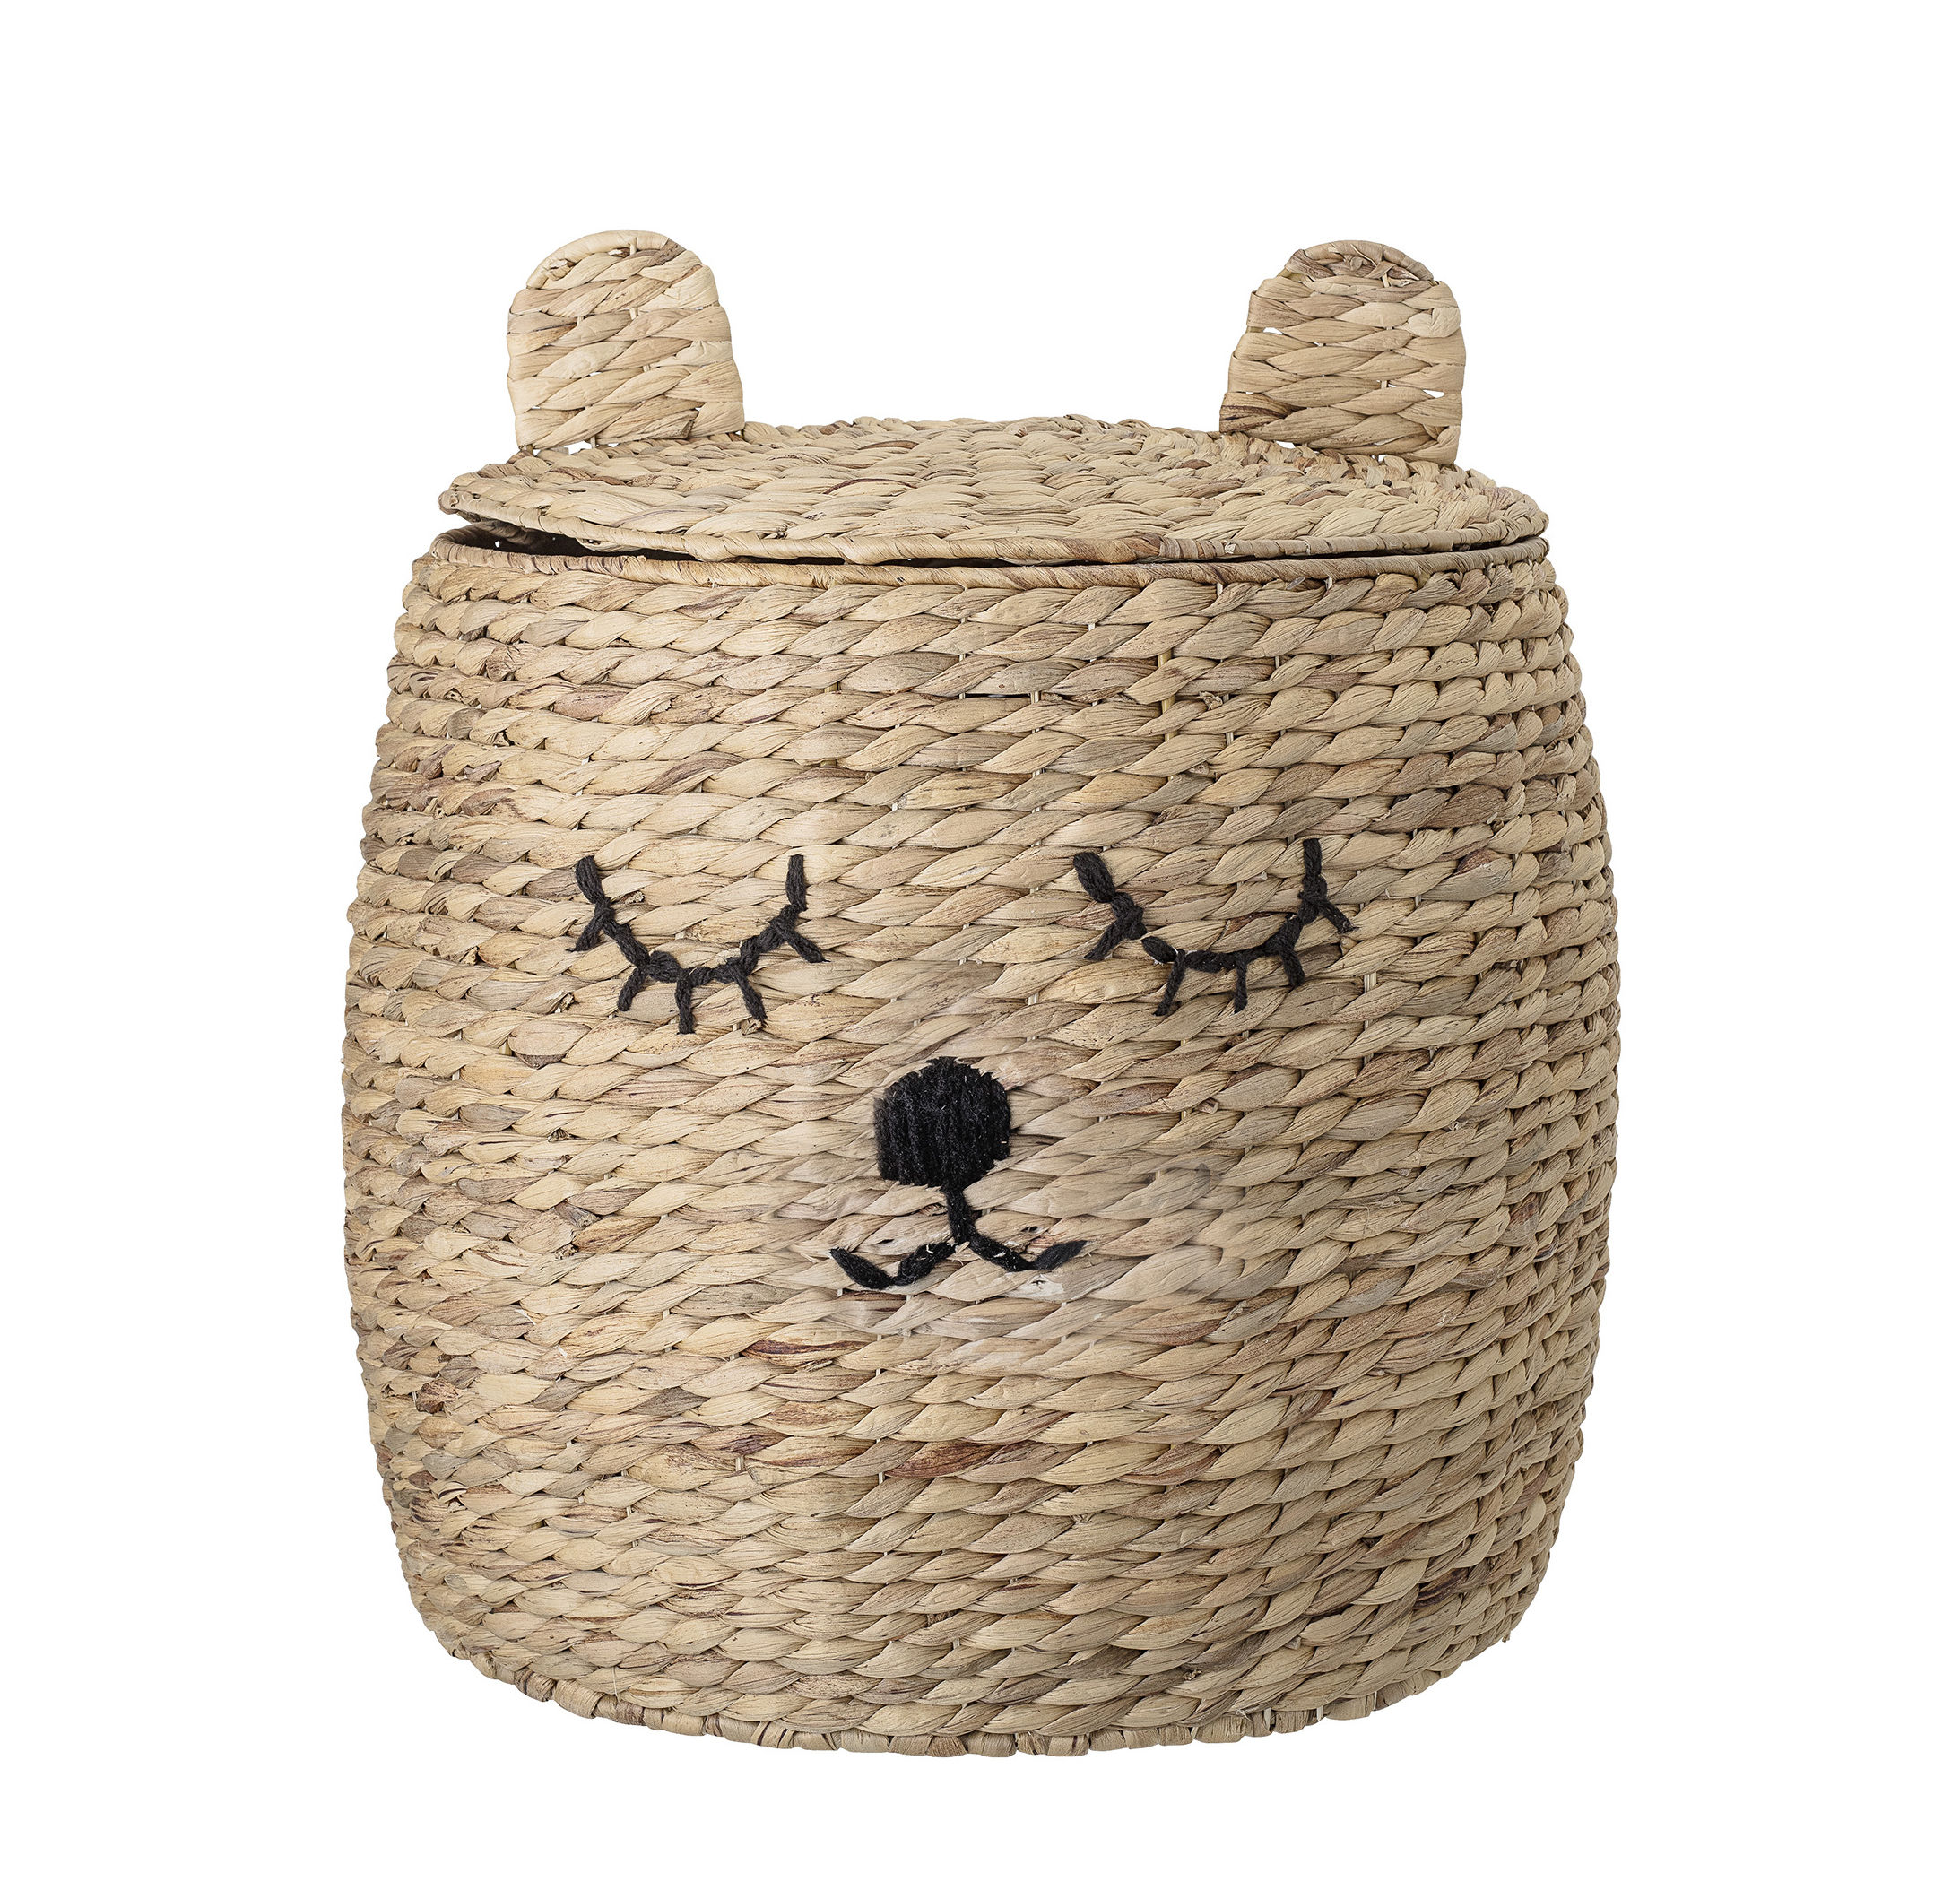 Decoration - Children's Home Accessories - Ourson Basket - / with lid - Water hyacinth by Bloomingville - Natural fibre - Jacinthe d'eau